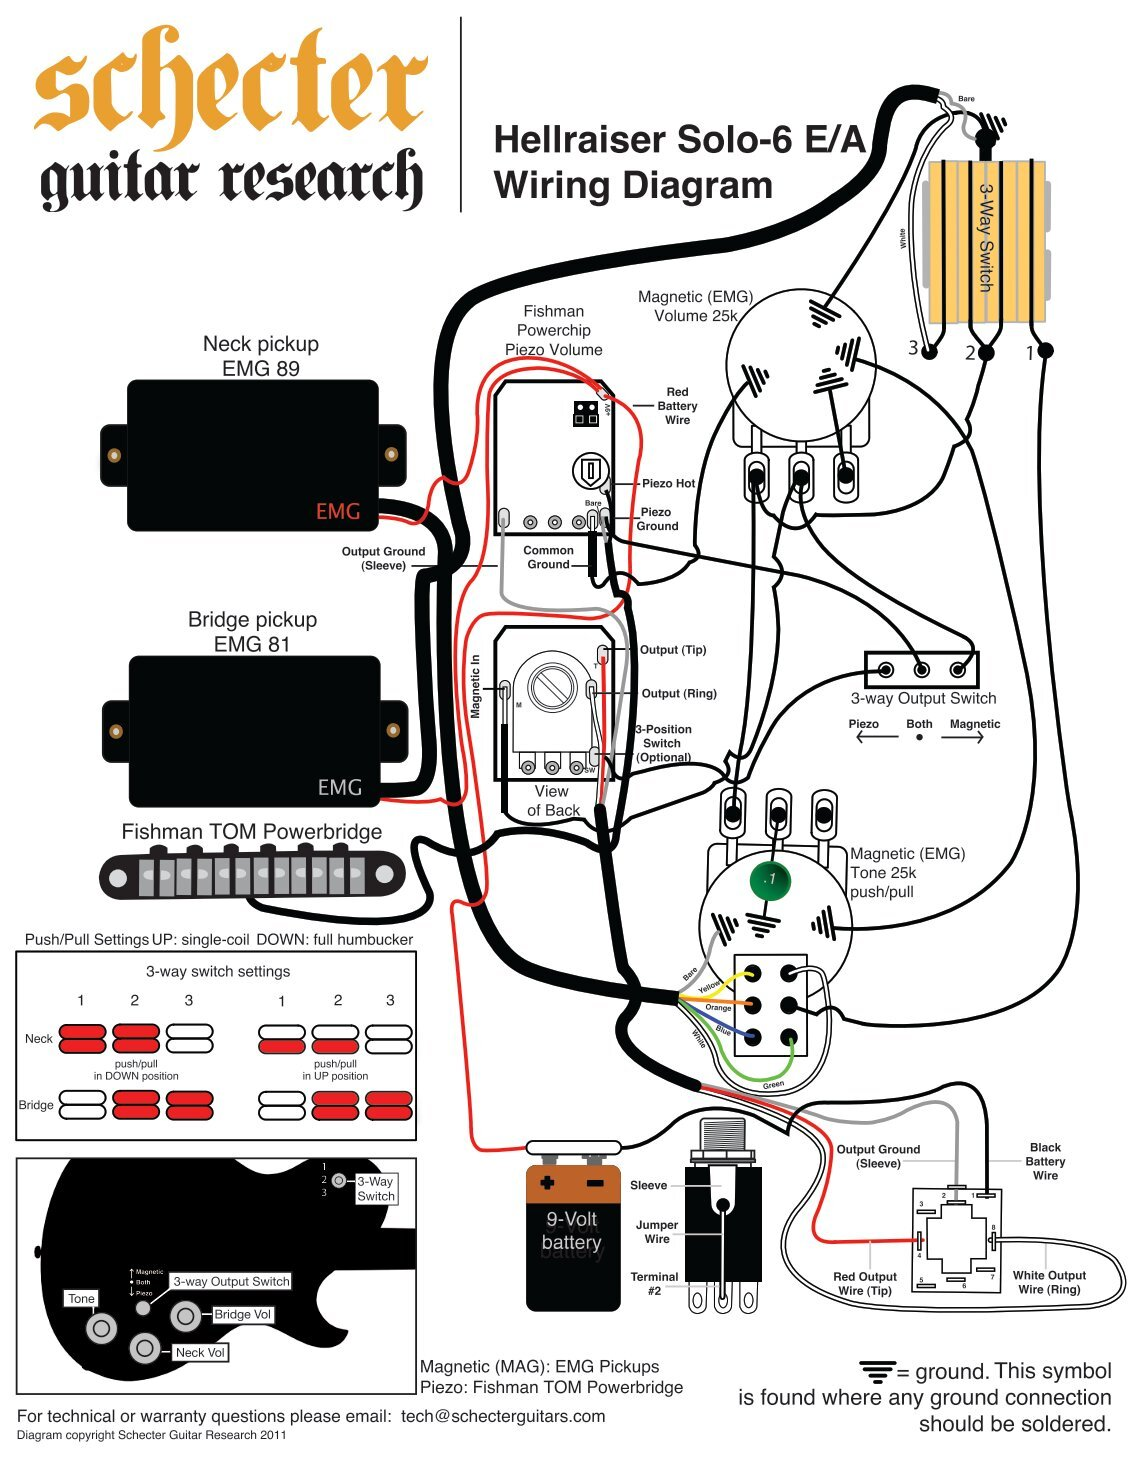 hellraiser solo 6 wiring diagram schecter guitars?quality\\\\\\\\\\\\\\\=85 wiring diagram 2001 prs mccarty gretsch electromatic wiring prs dragon 2 wiring diagram at crackthecode.co